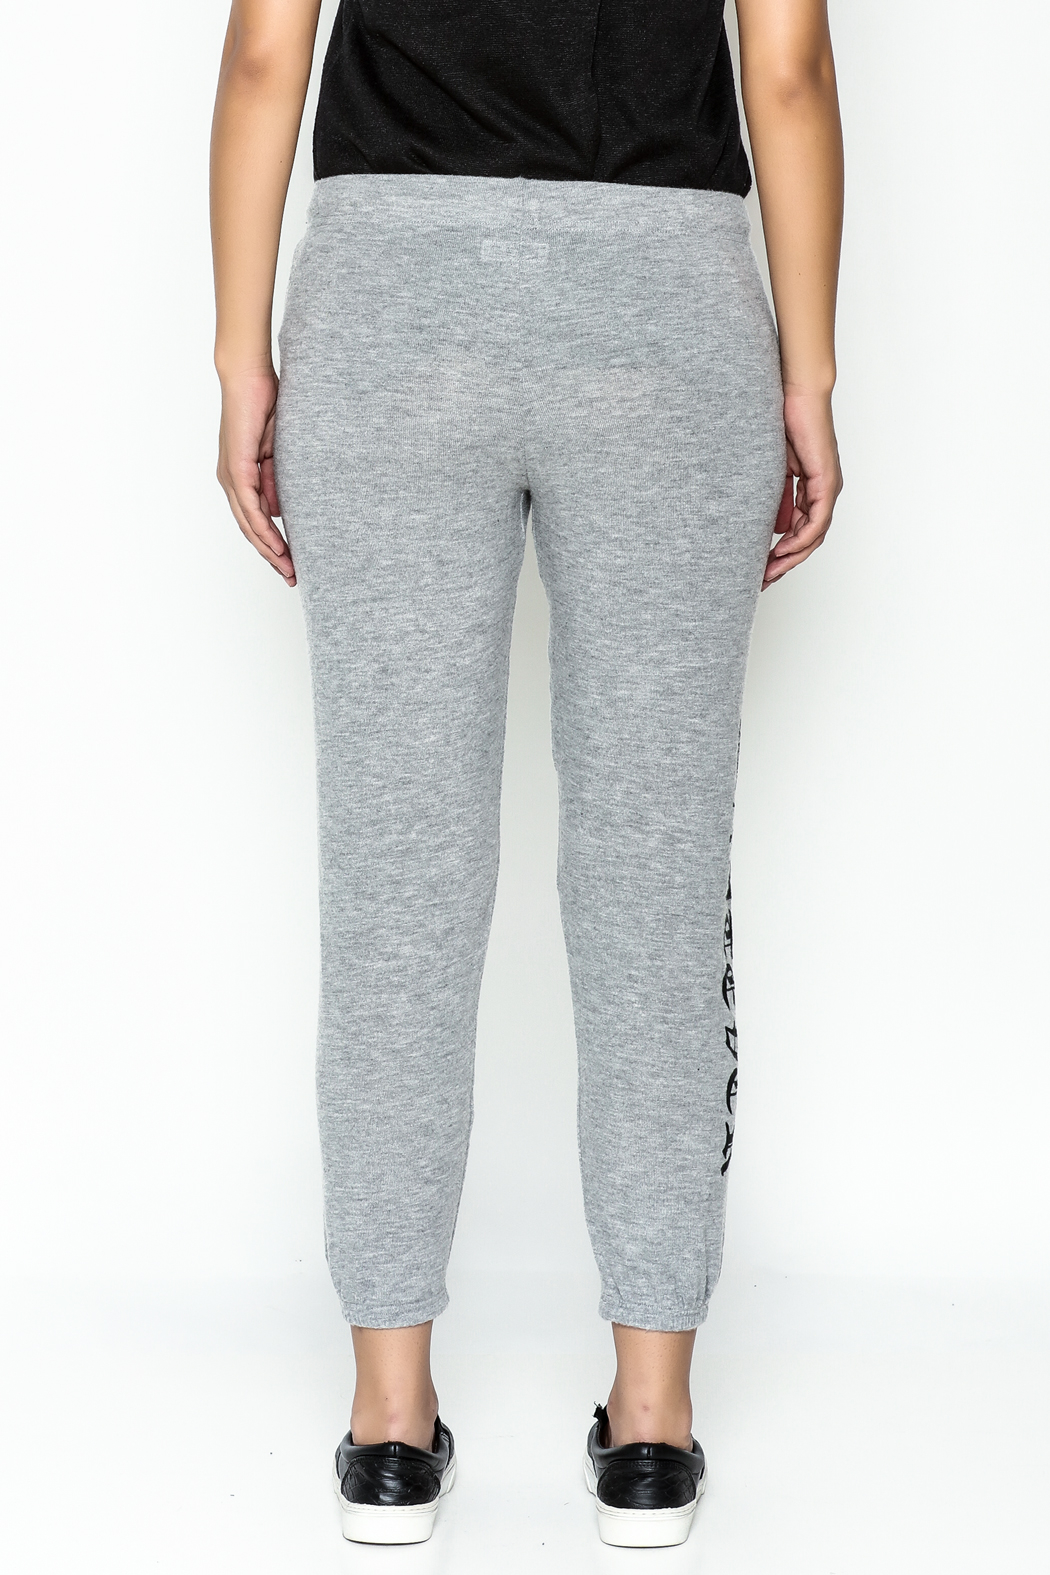 Lauren Moshi Hacci Cropped Pants - Back Cropped Image